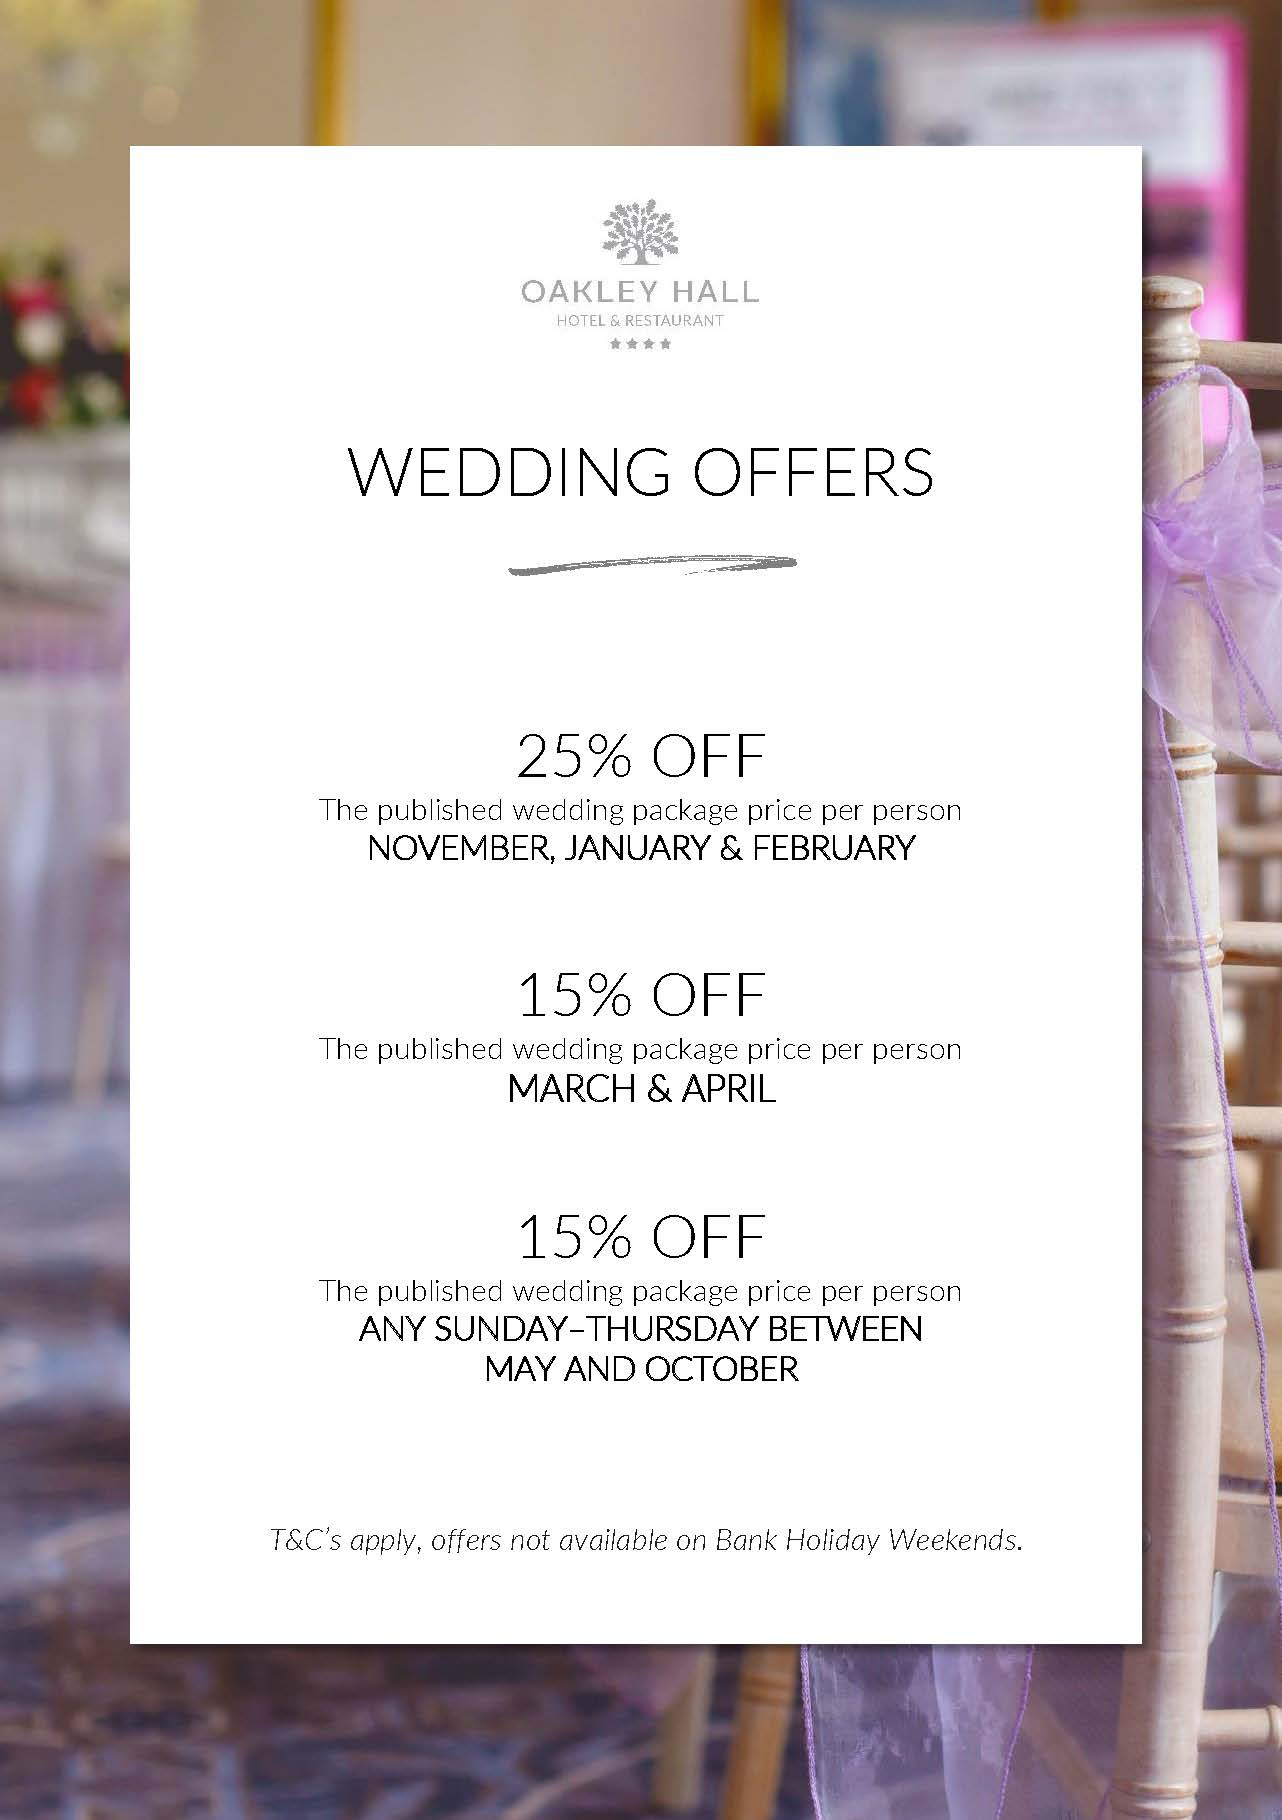 Wedding Offers at Oakley Hall